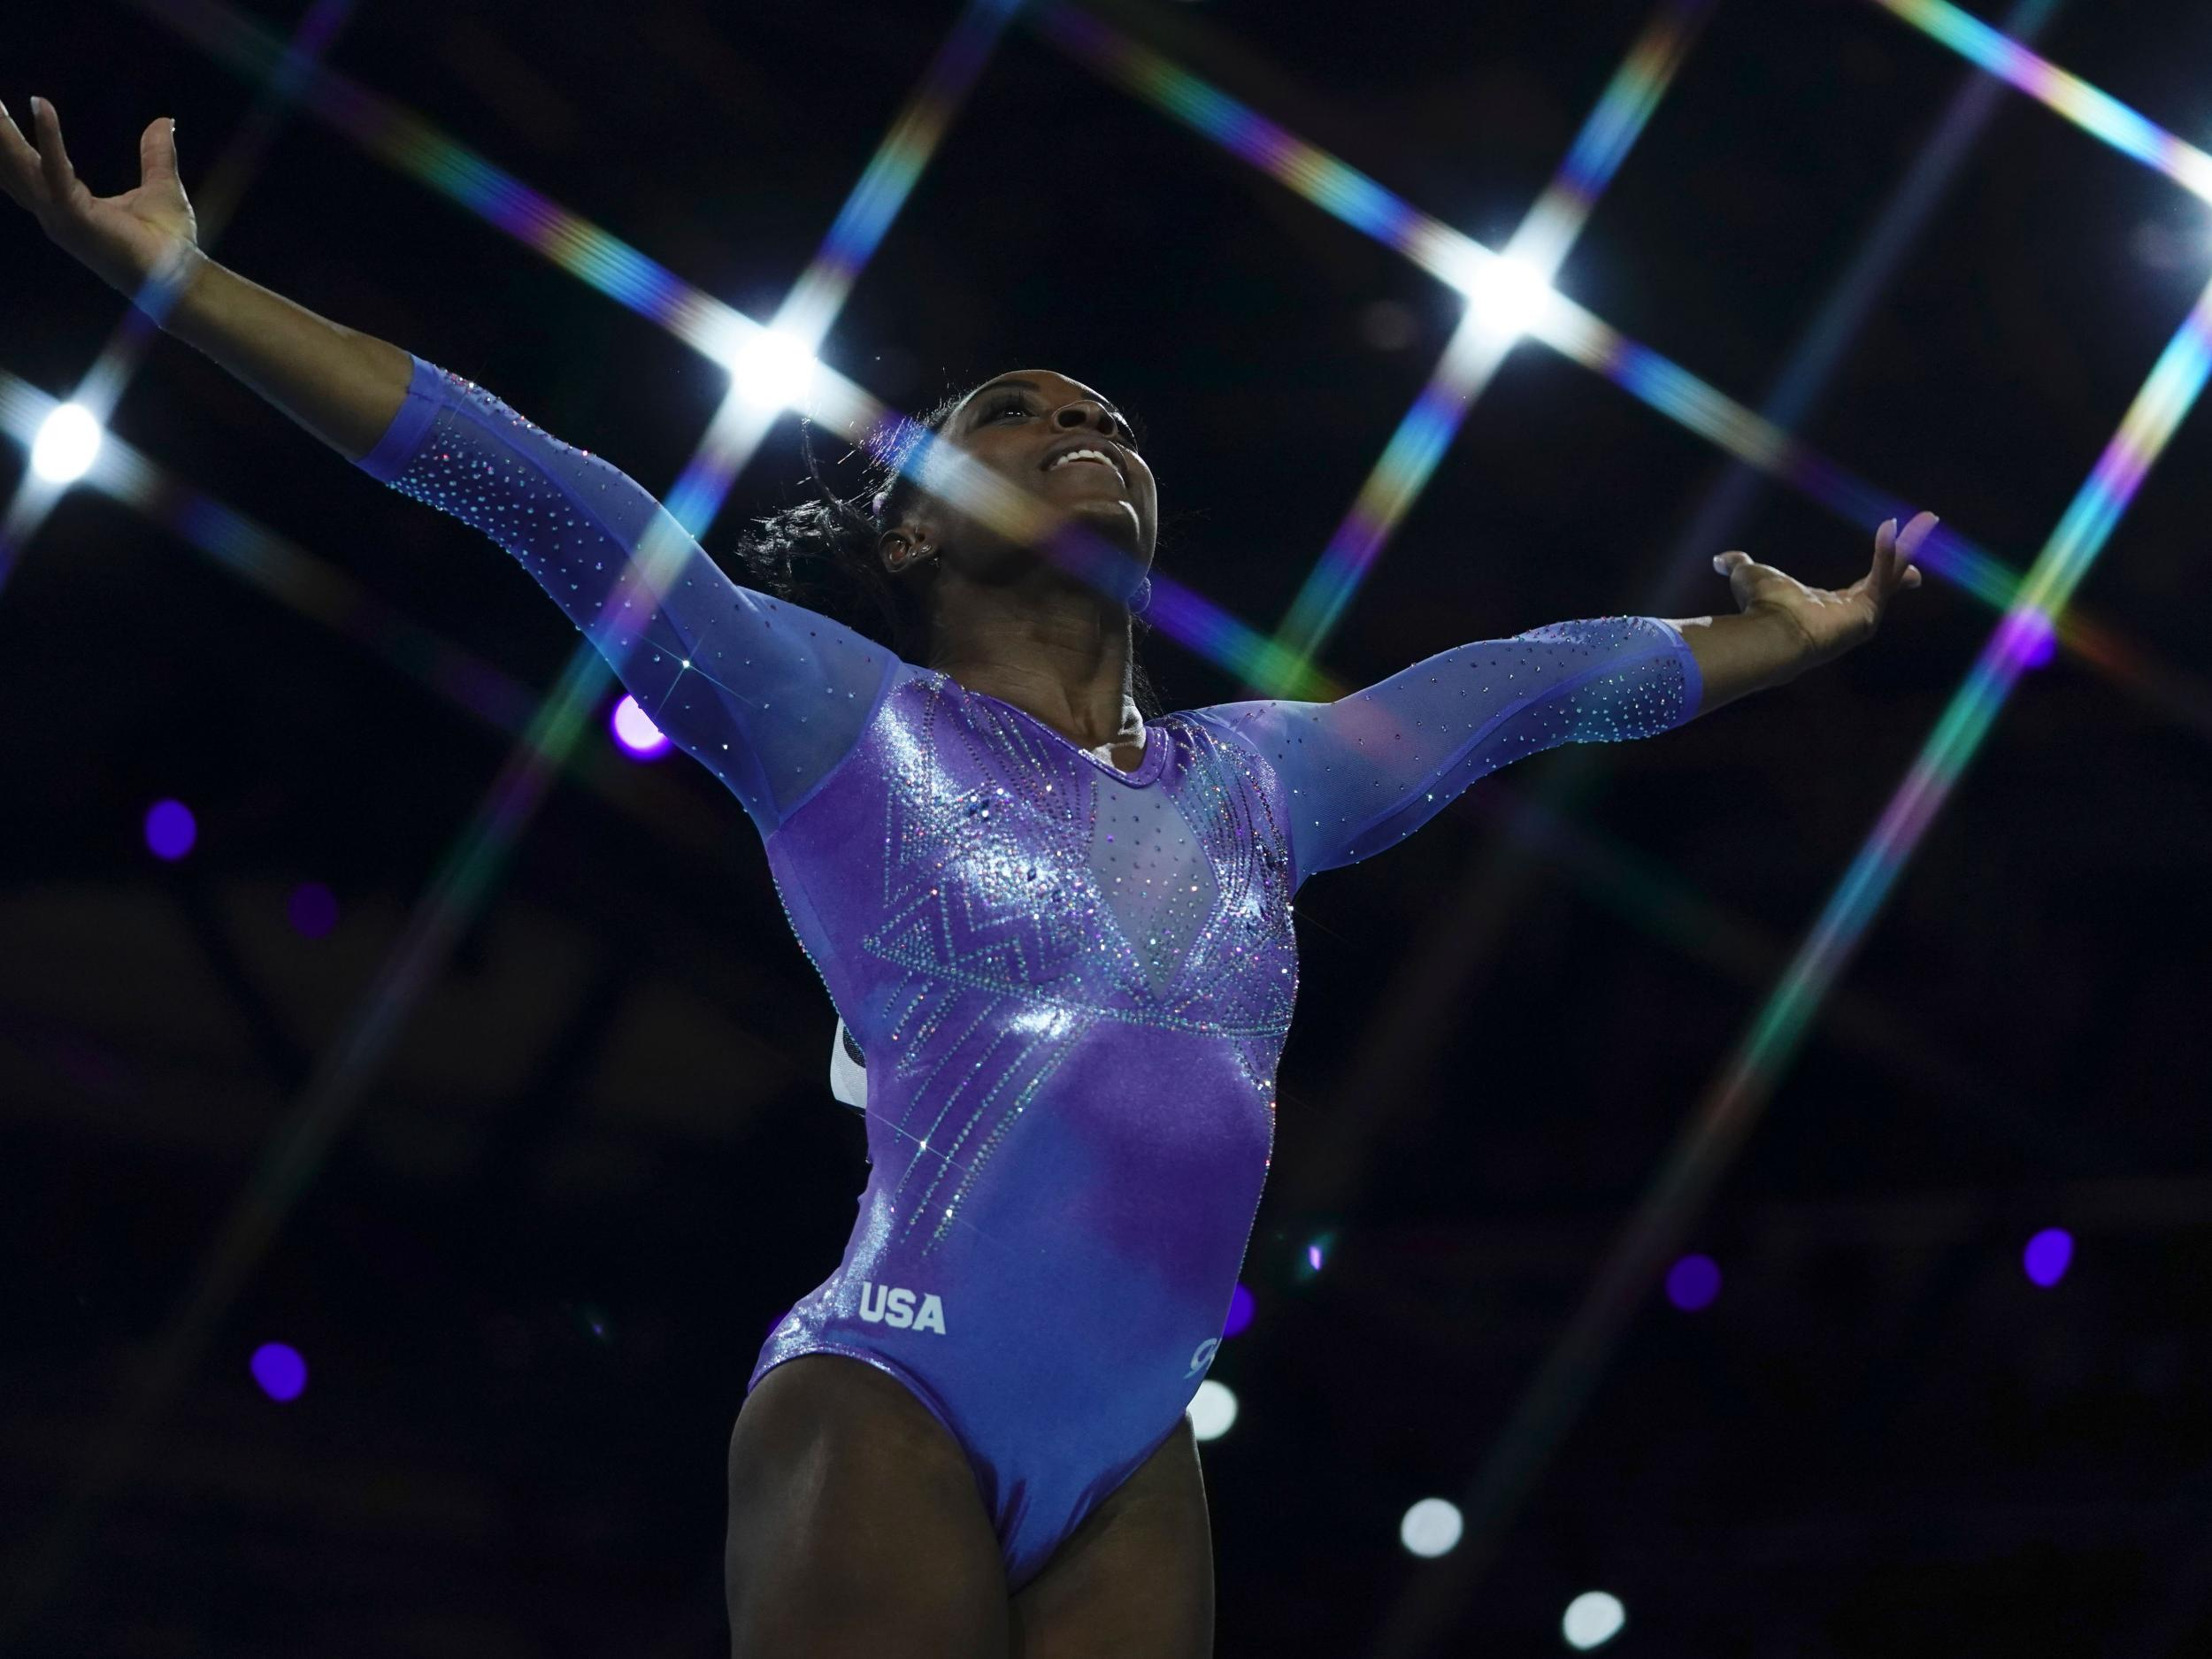 Simone Biles wins floor and beam events to win record 25th world championship medal